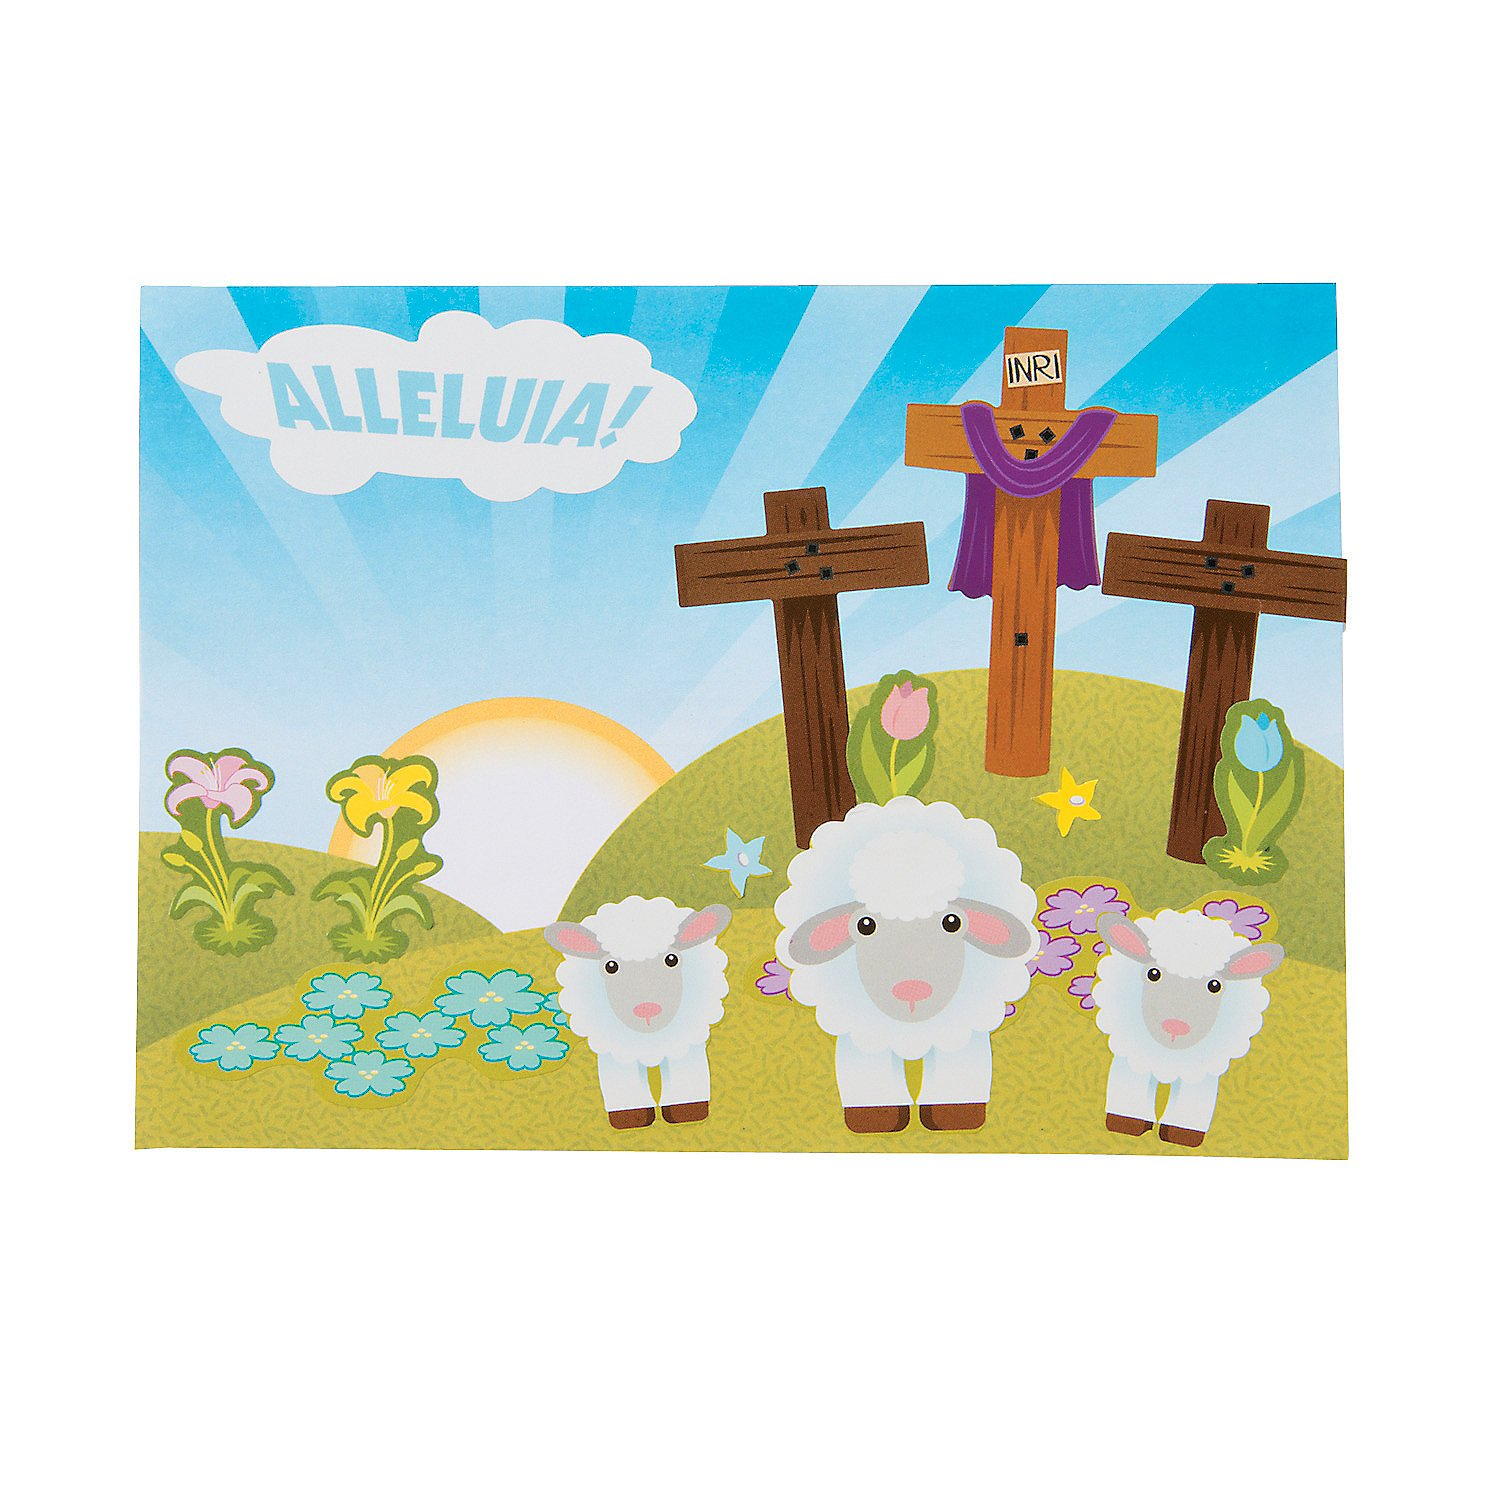 Make - Easter 12 Pieces Stickers Sm Alleluia Mini Sticker Scene for Easter Scene Stationery A Fun Express